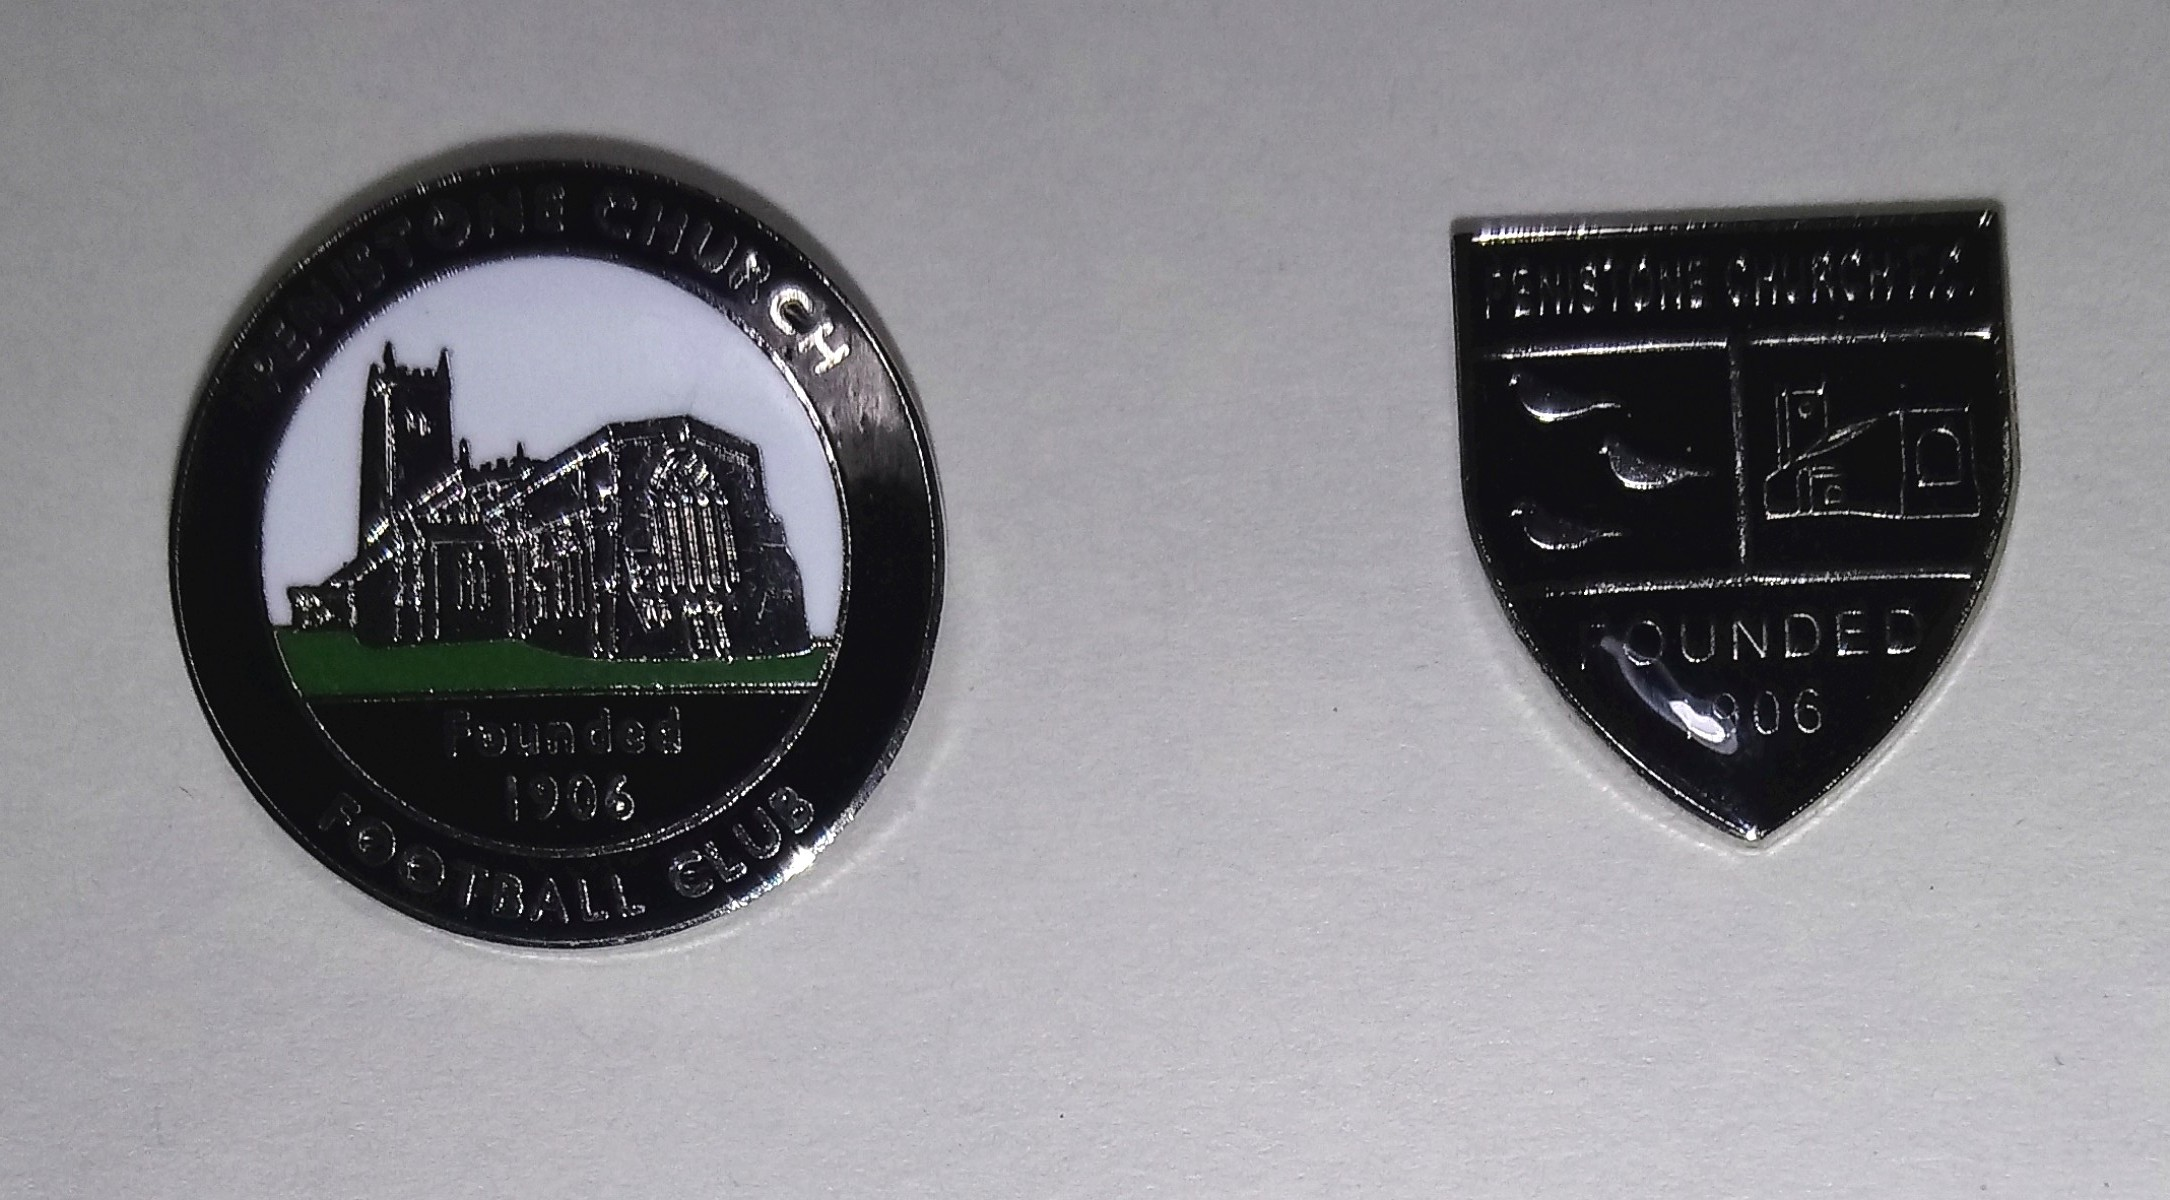 £3 - Two types of badge -   EXCLUSIVELY AVAILABLE ONLY AT THE DSM Memorial Ground   - from the Bar and the pay booth